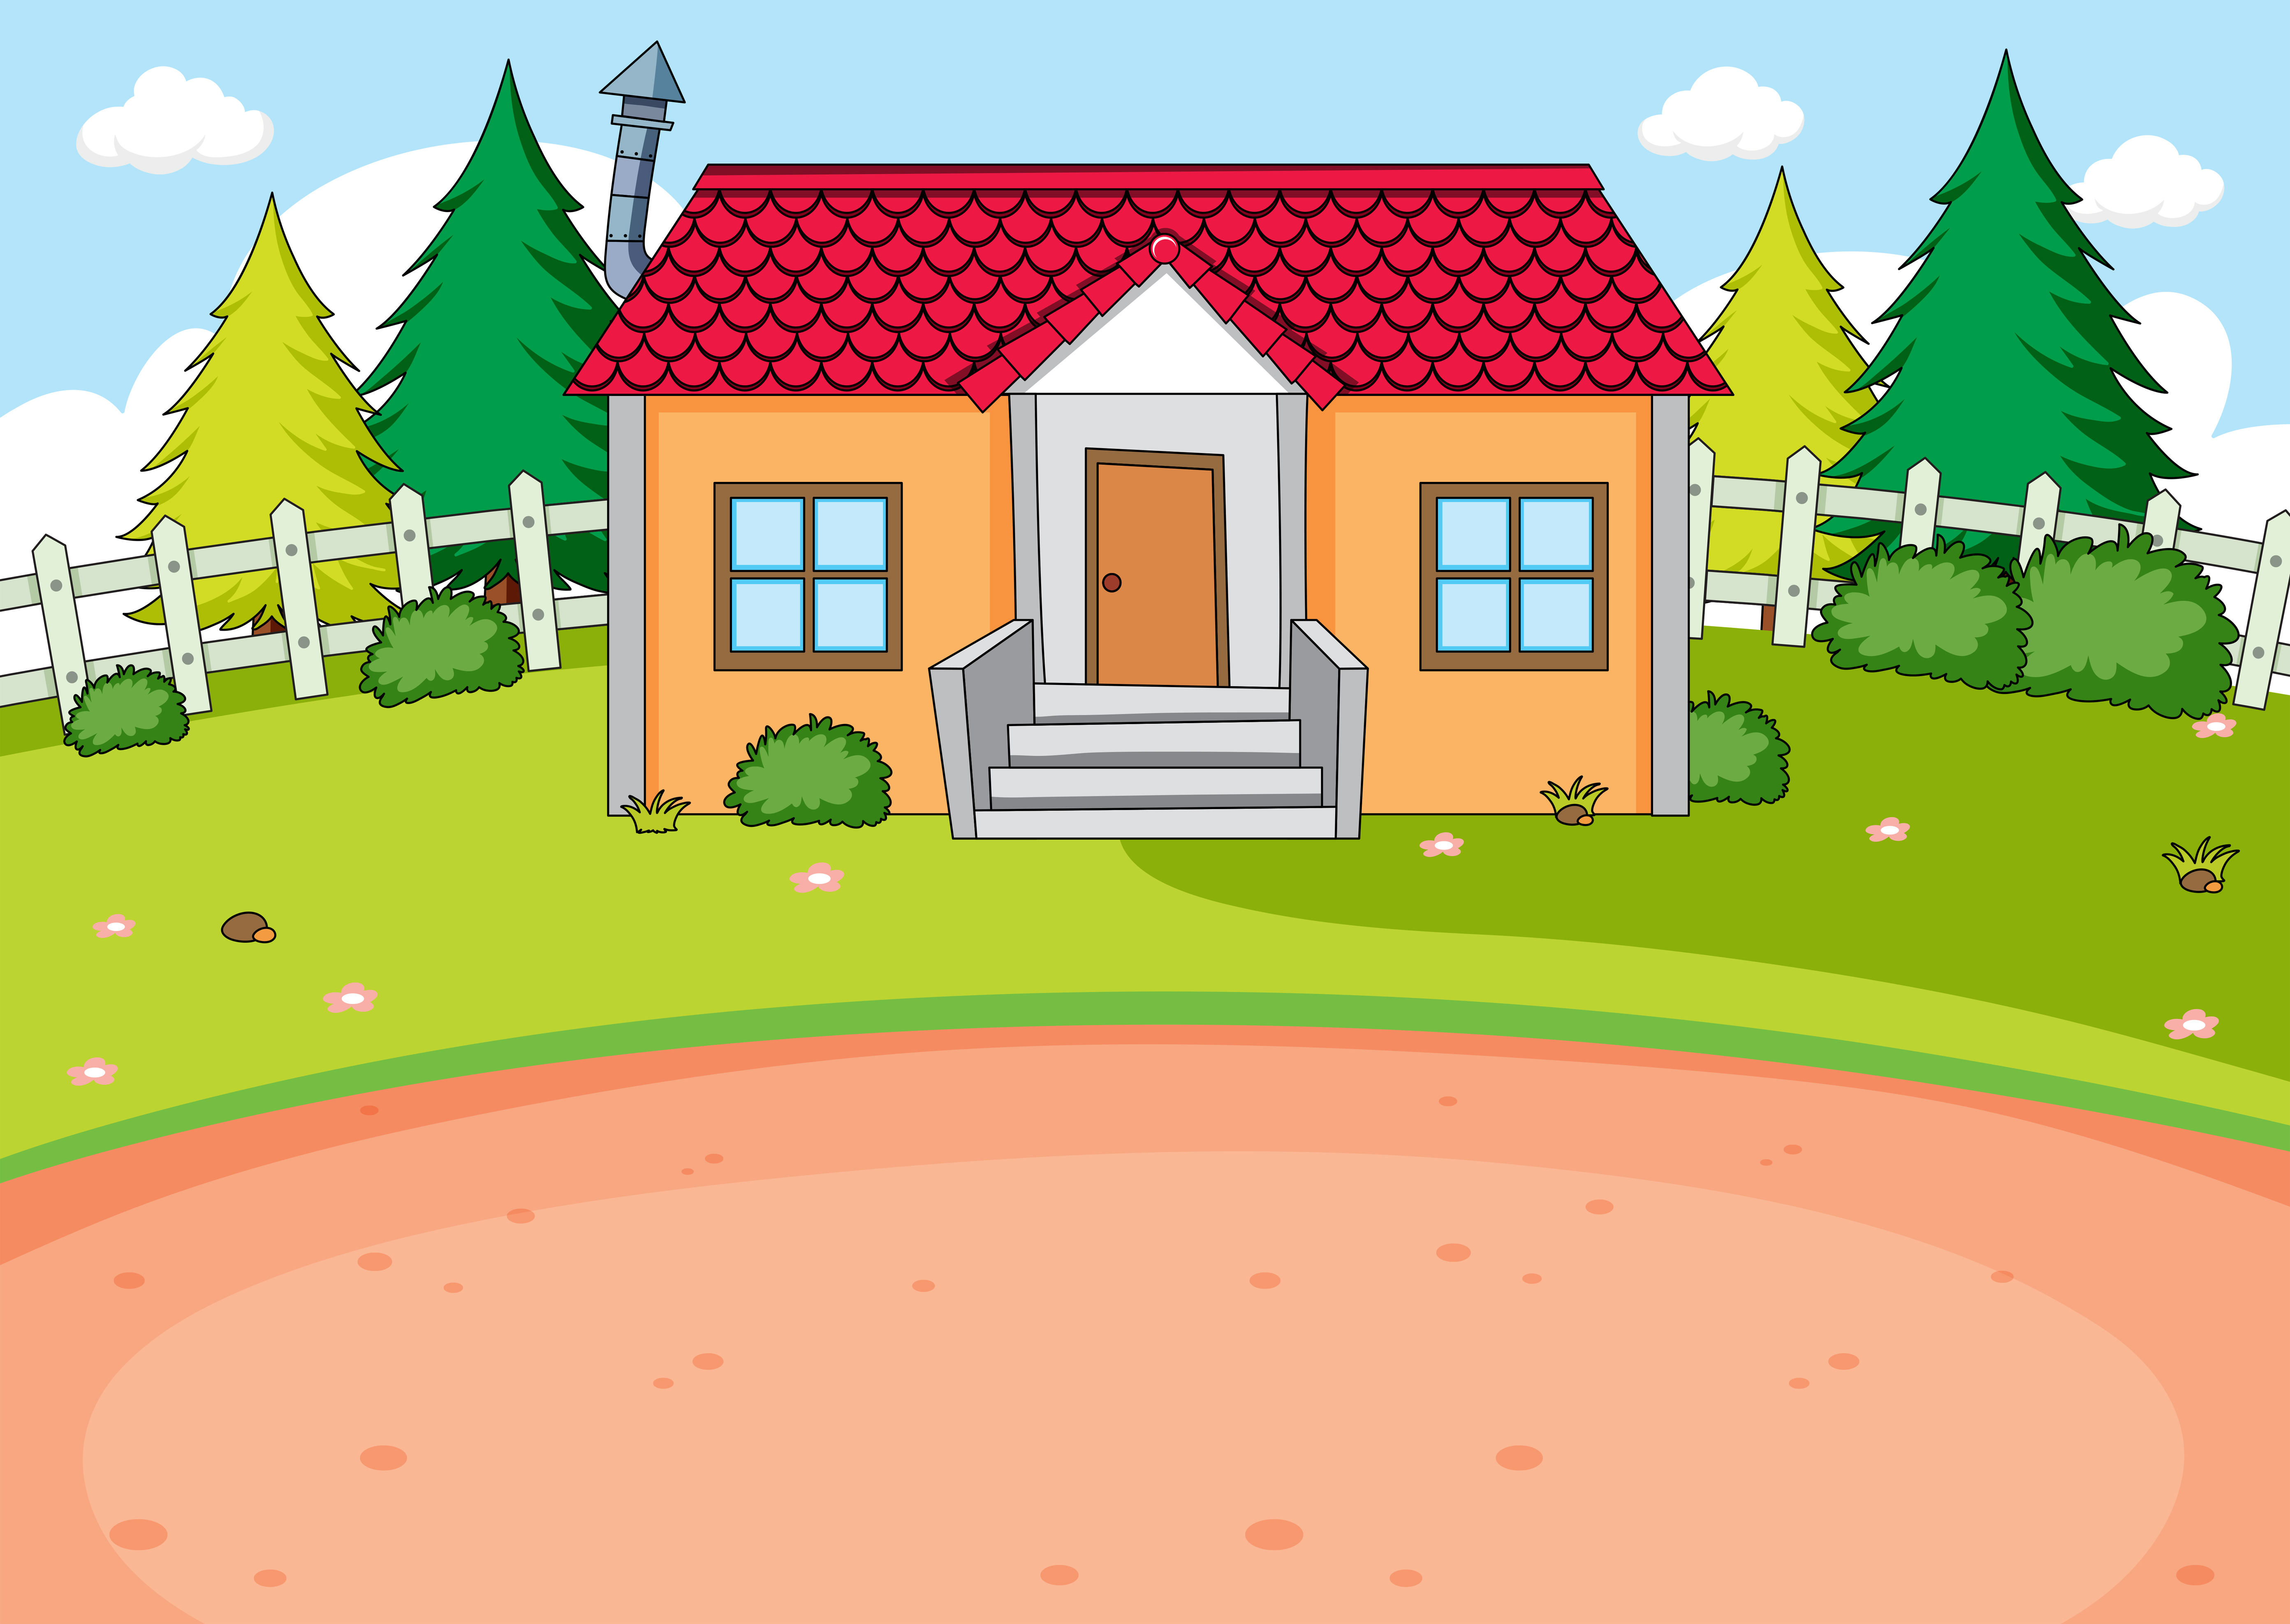 Simple house design background download free vector art - Simple home design software free ...